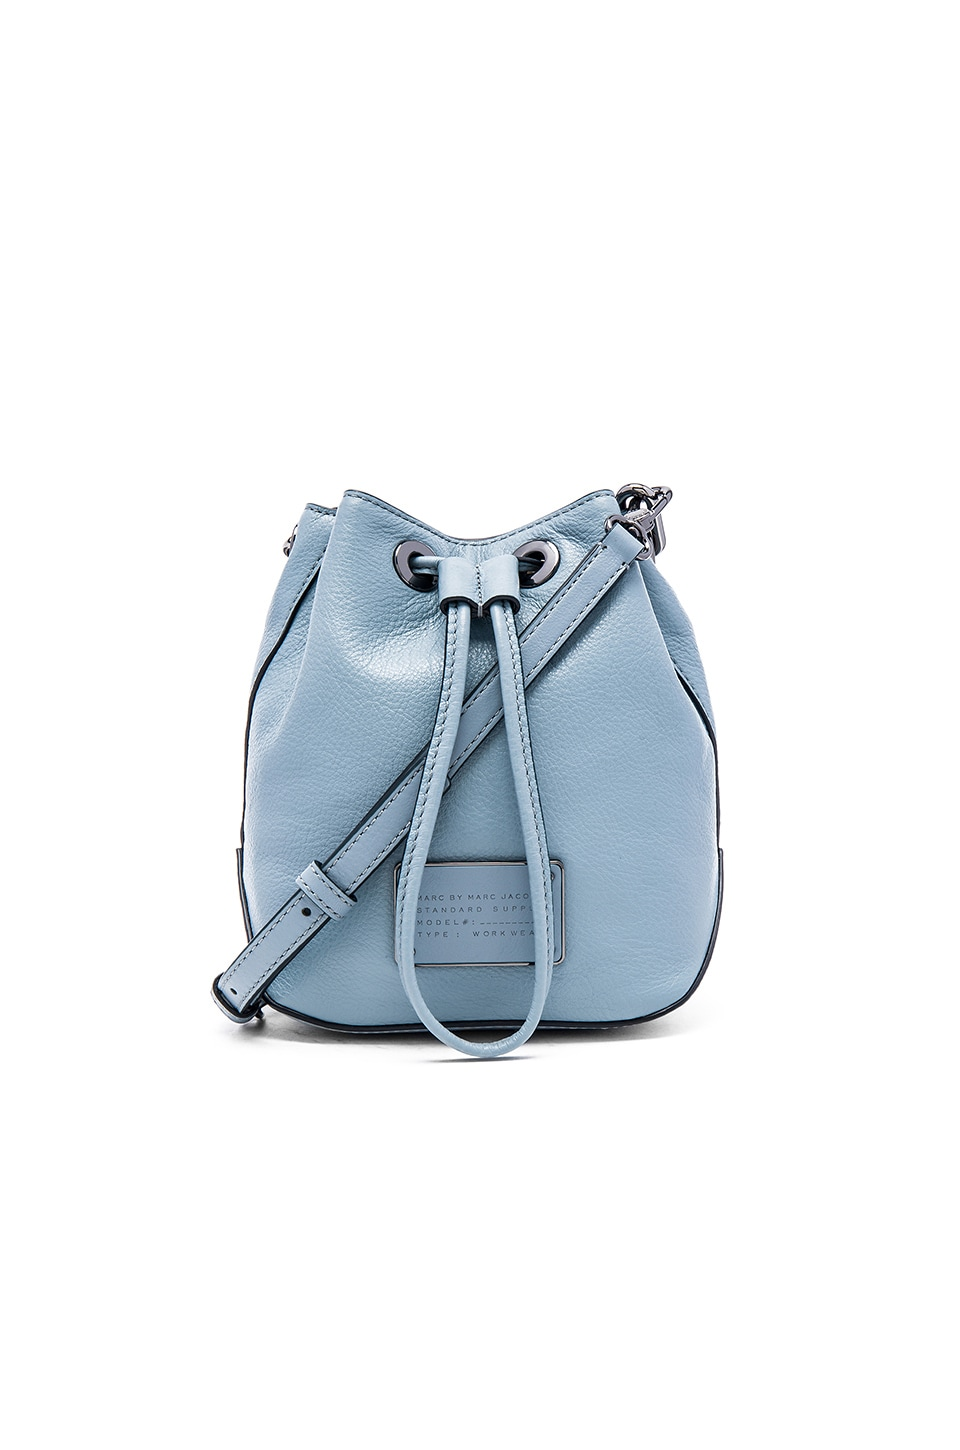 Bag Of Ice Price Marc By Marc Jacobs Too Hot To Handle Drawstring Bucket Bag In Ice Blue From Revolve